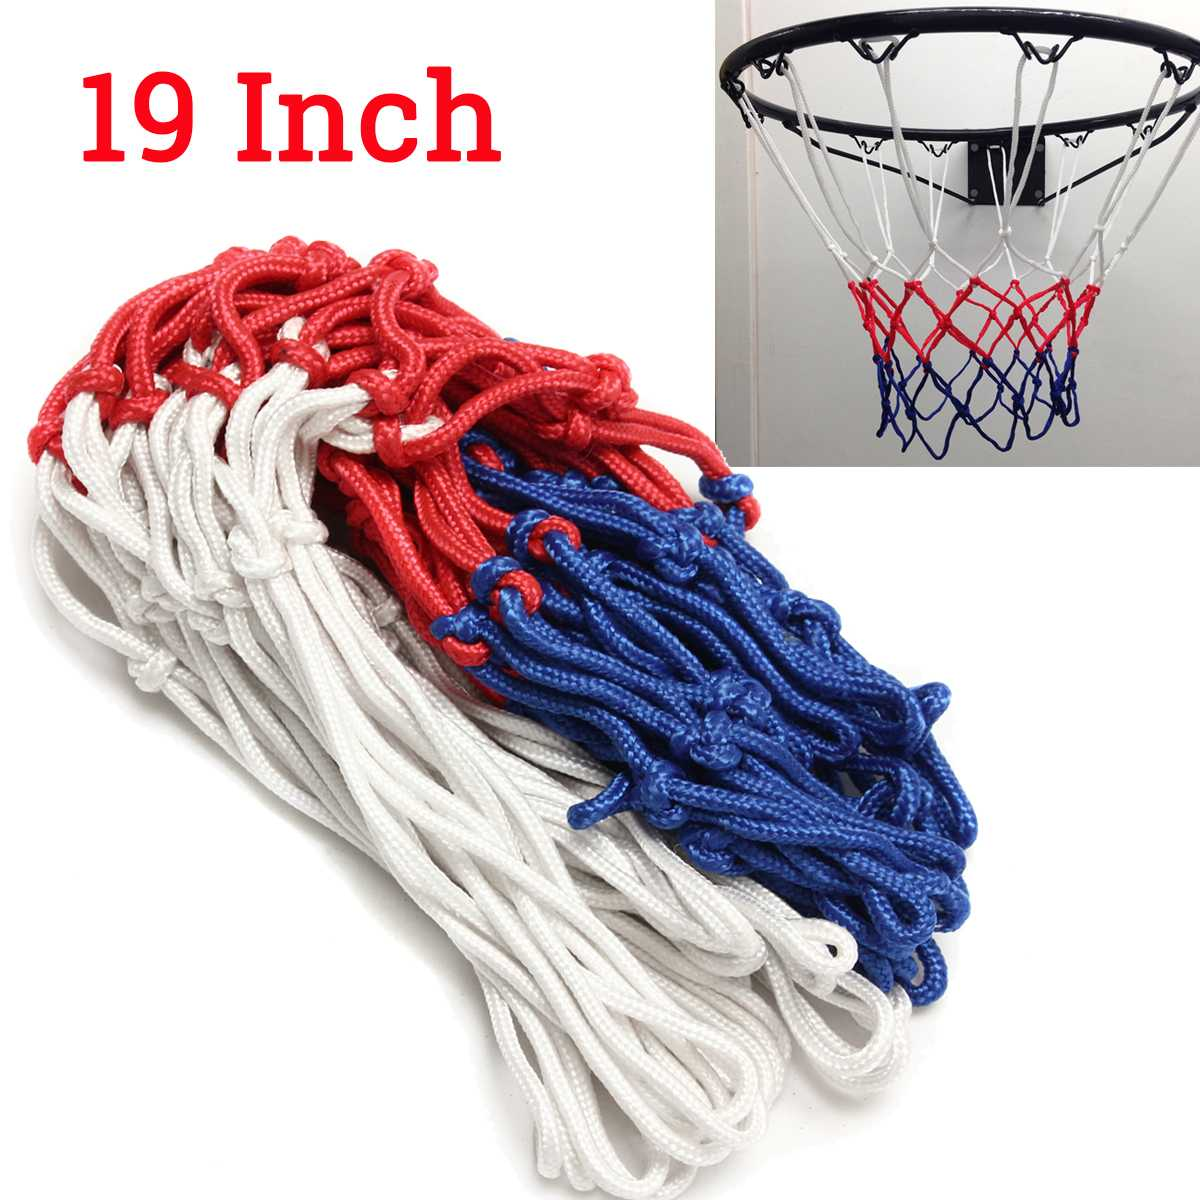 6mm Basketball Rim Mesh Net Durable Basketball Net Heavy Duty Nylon Net Hoop Goal Rim Mesh Fits Standard Basketball Rims